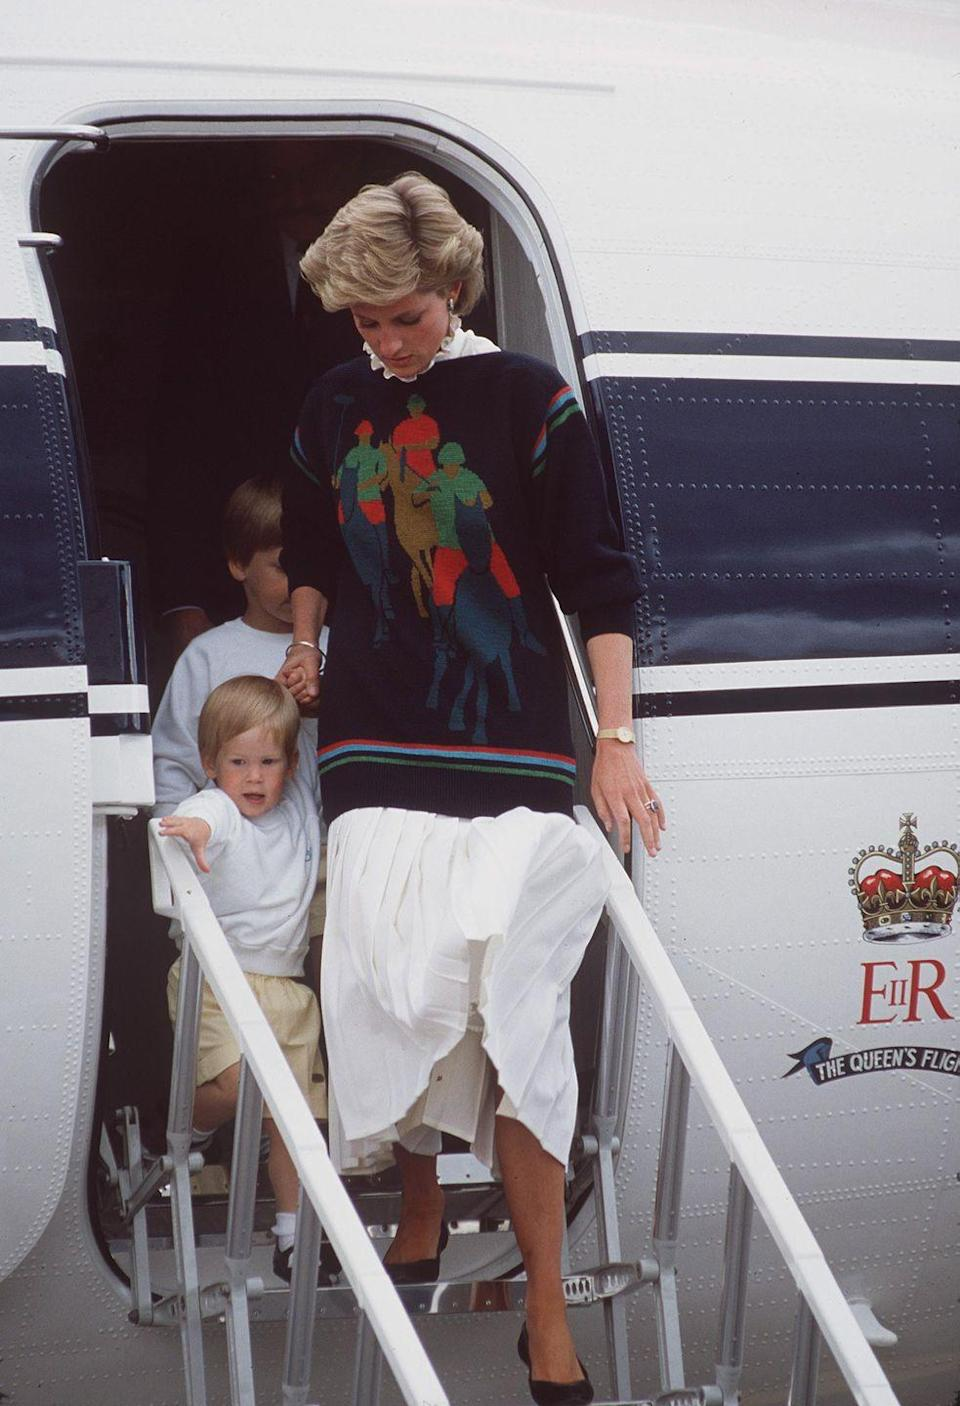 <p>Diana was never as into extremely British sports the way her husband was, but wearing polo sure does seem more enjoyable than watching it. (Sorry.) (Not sorry.)<br></p>